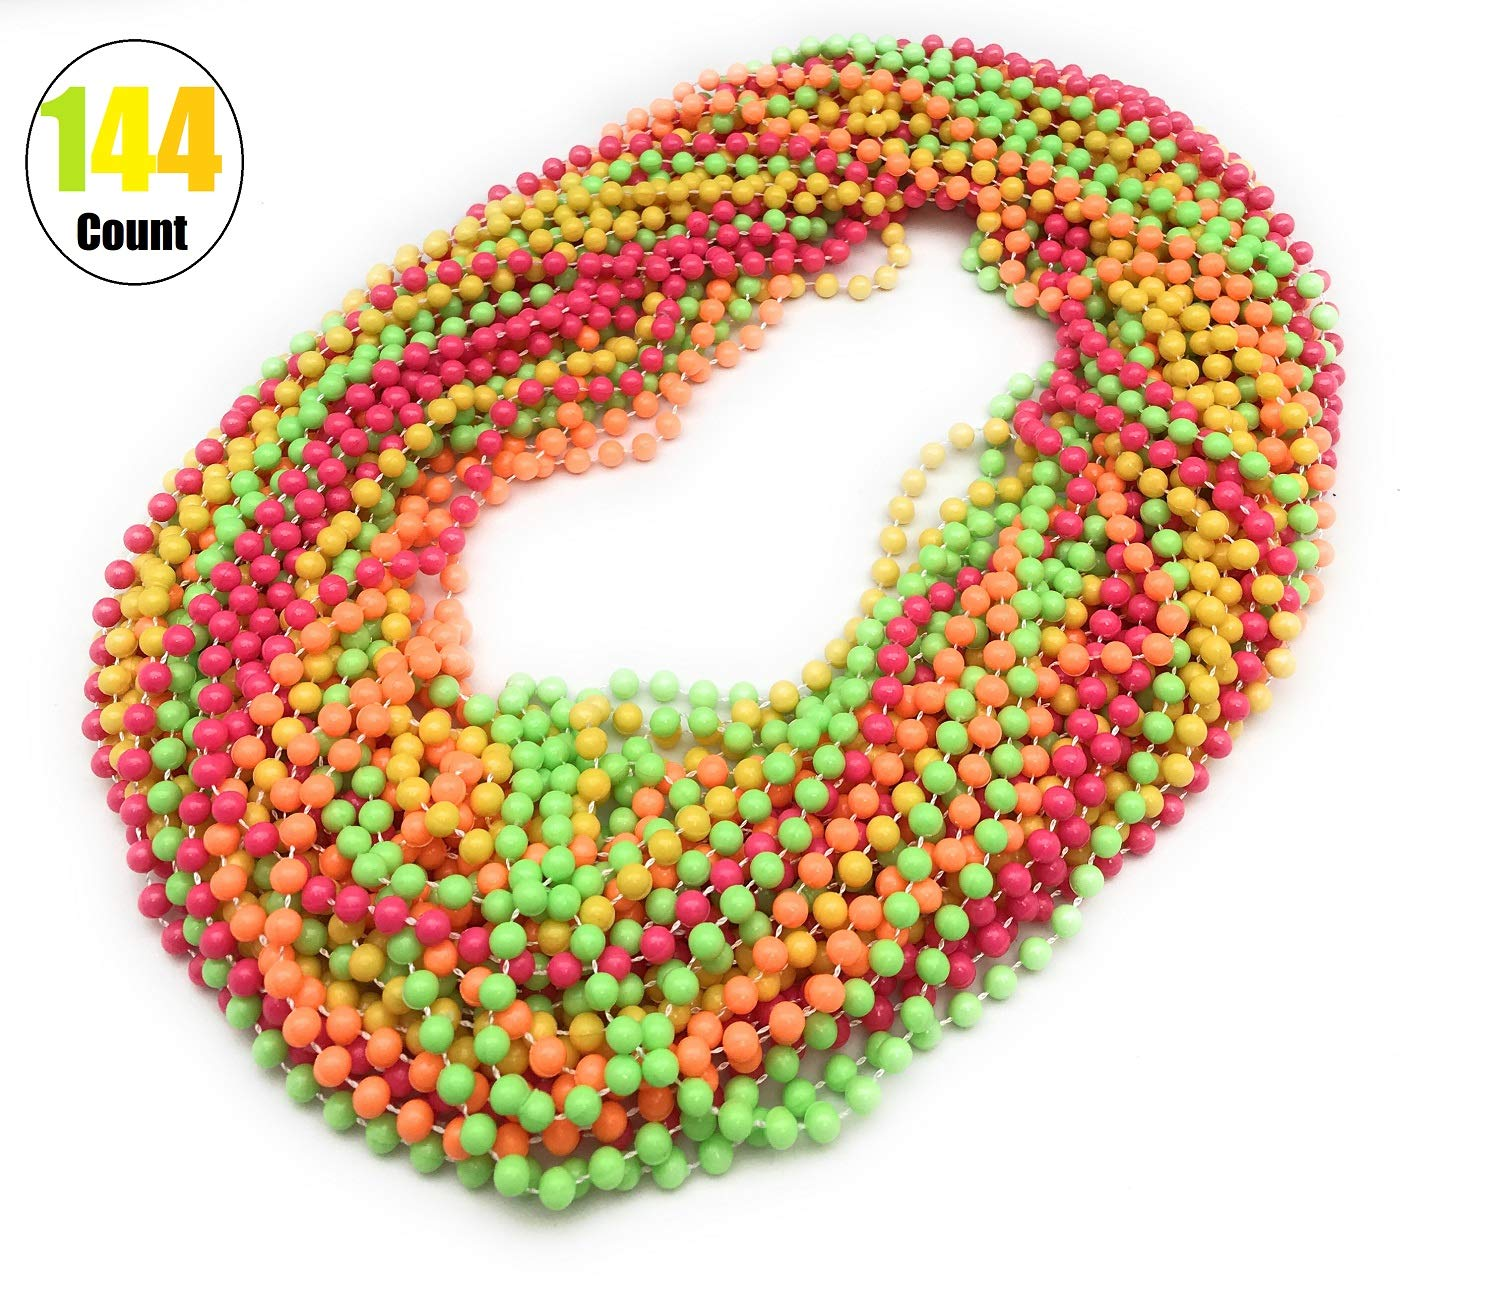 144 Pieces 33 inch 07mm Fluorescent Beads Color Mardi Gras Beads Beaded Necklace Ideal for New Years Eve, Anniversary Party, Party Favors, and Table Centerpiece Decorations by Oojami